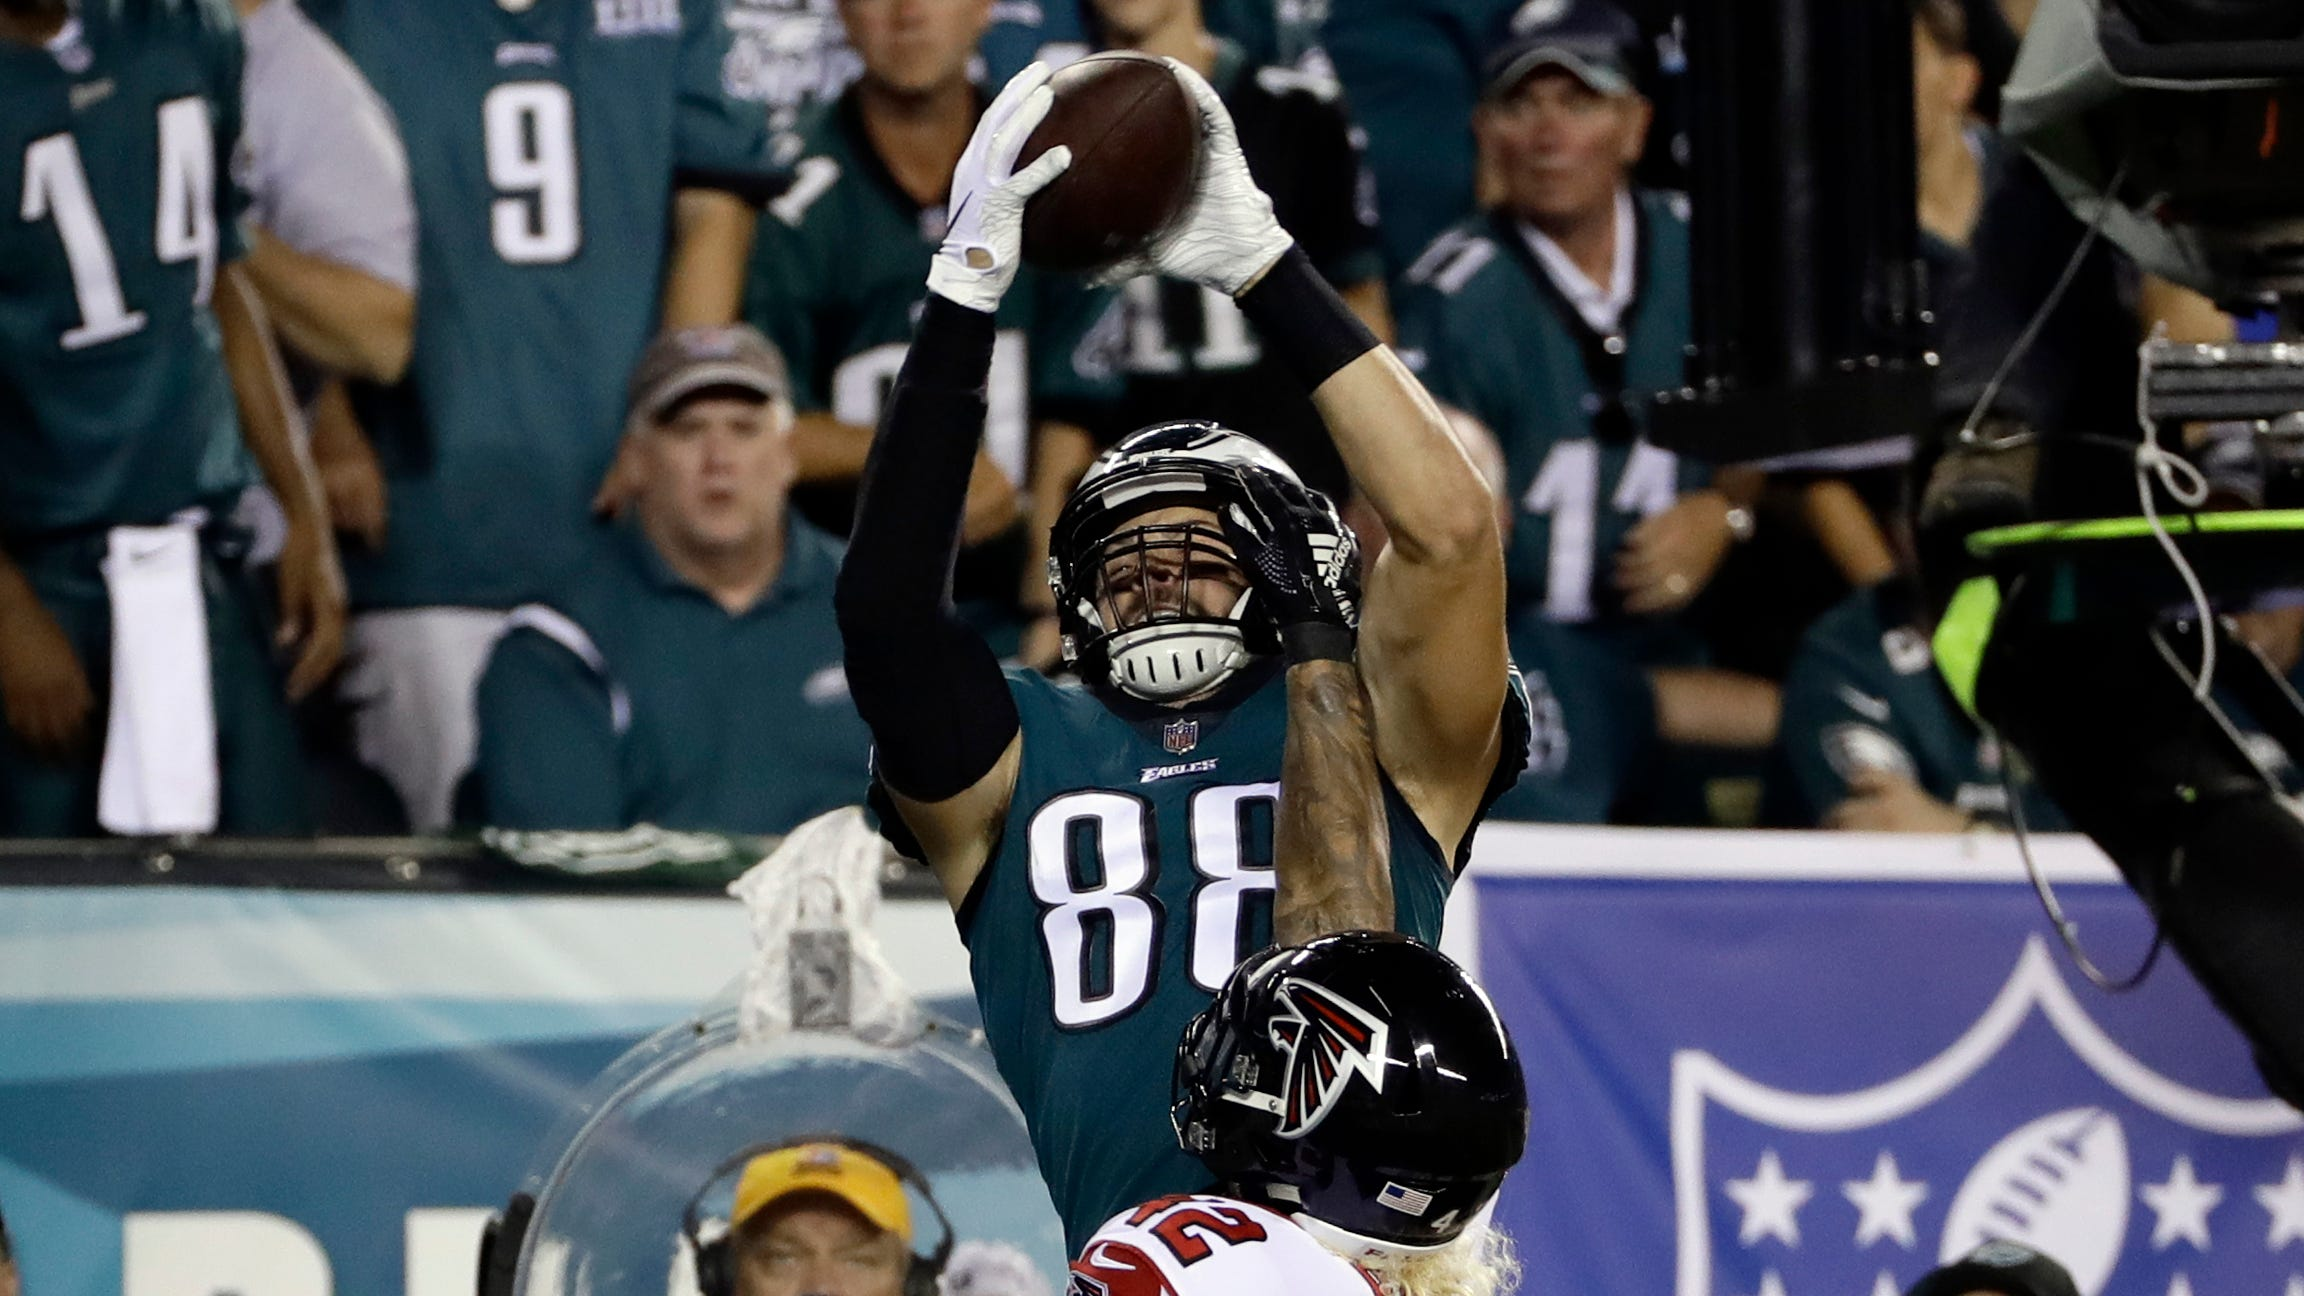 The Eagles have re-signed Jordan Matthews, a good friend of QB Carson Wentz, to flesh out a depleted receiving corps.